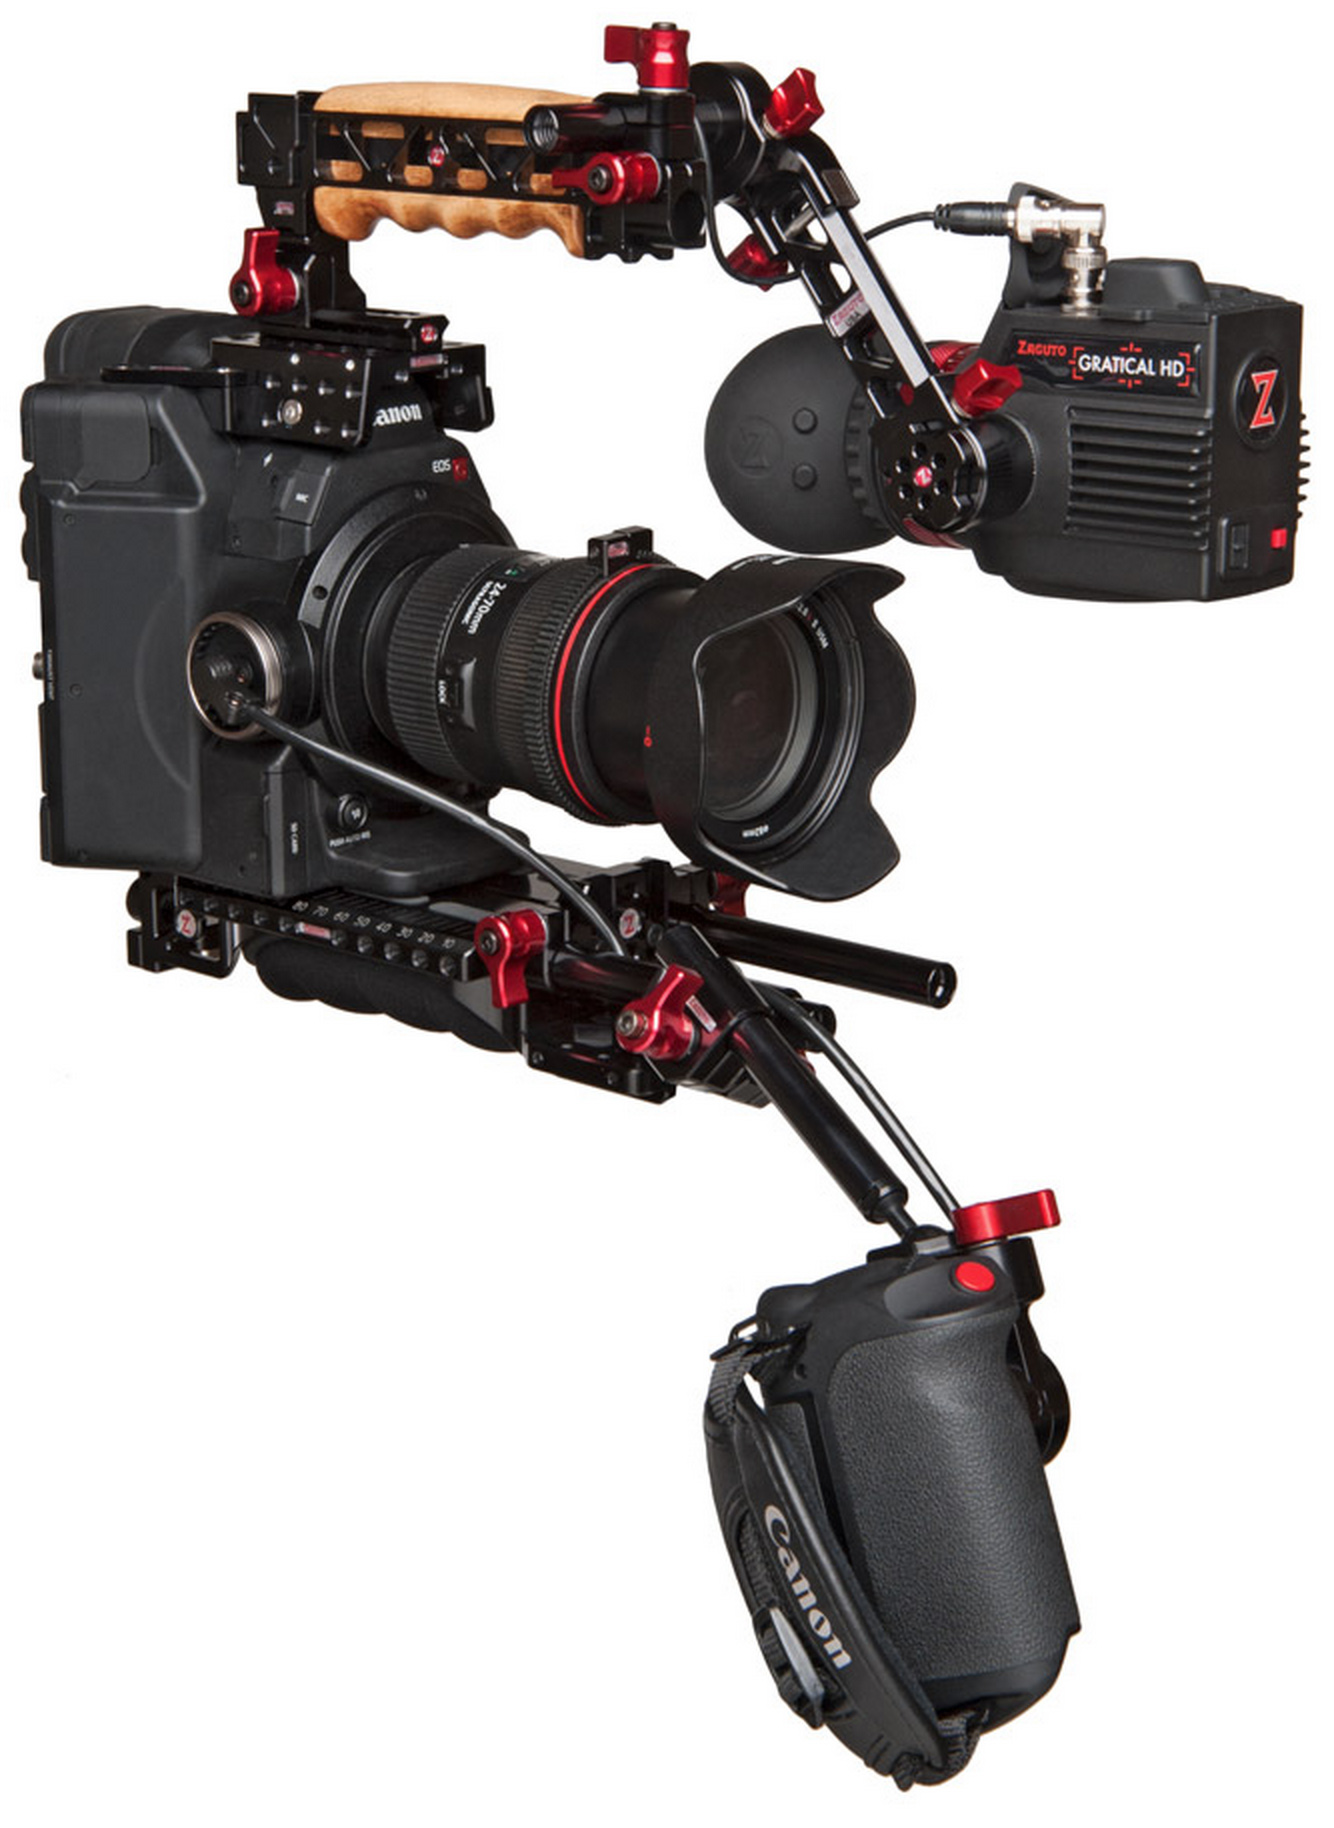 C300 Mark II Gets The Recoil Treatment From Zacuto | cinema5D